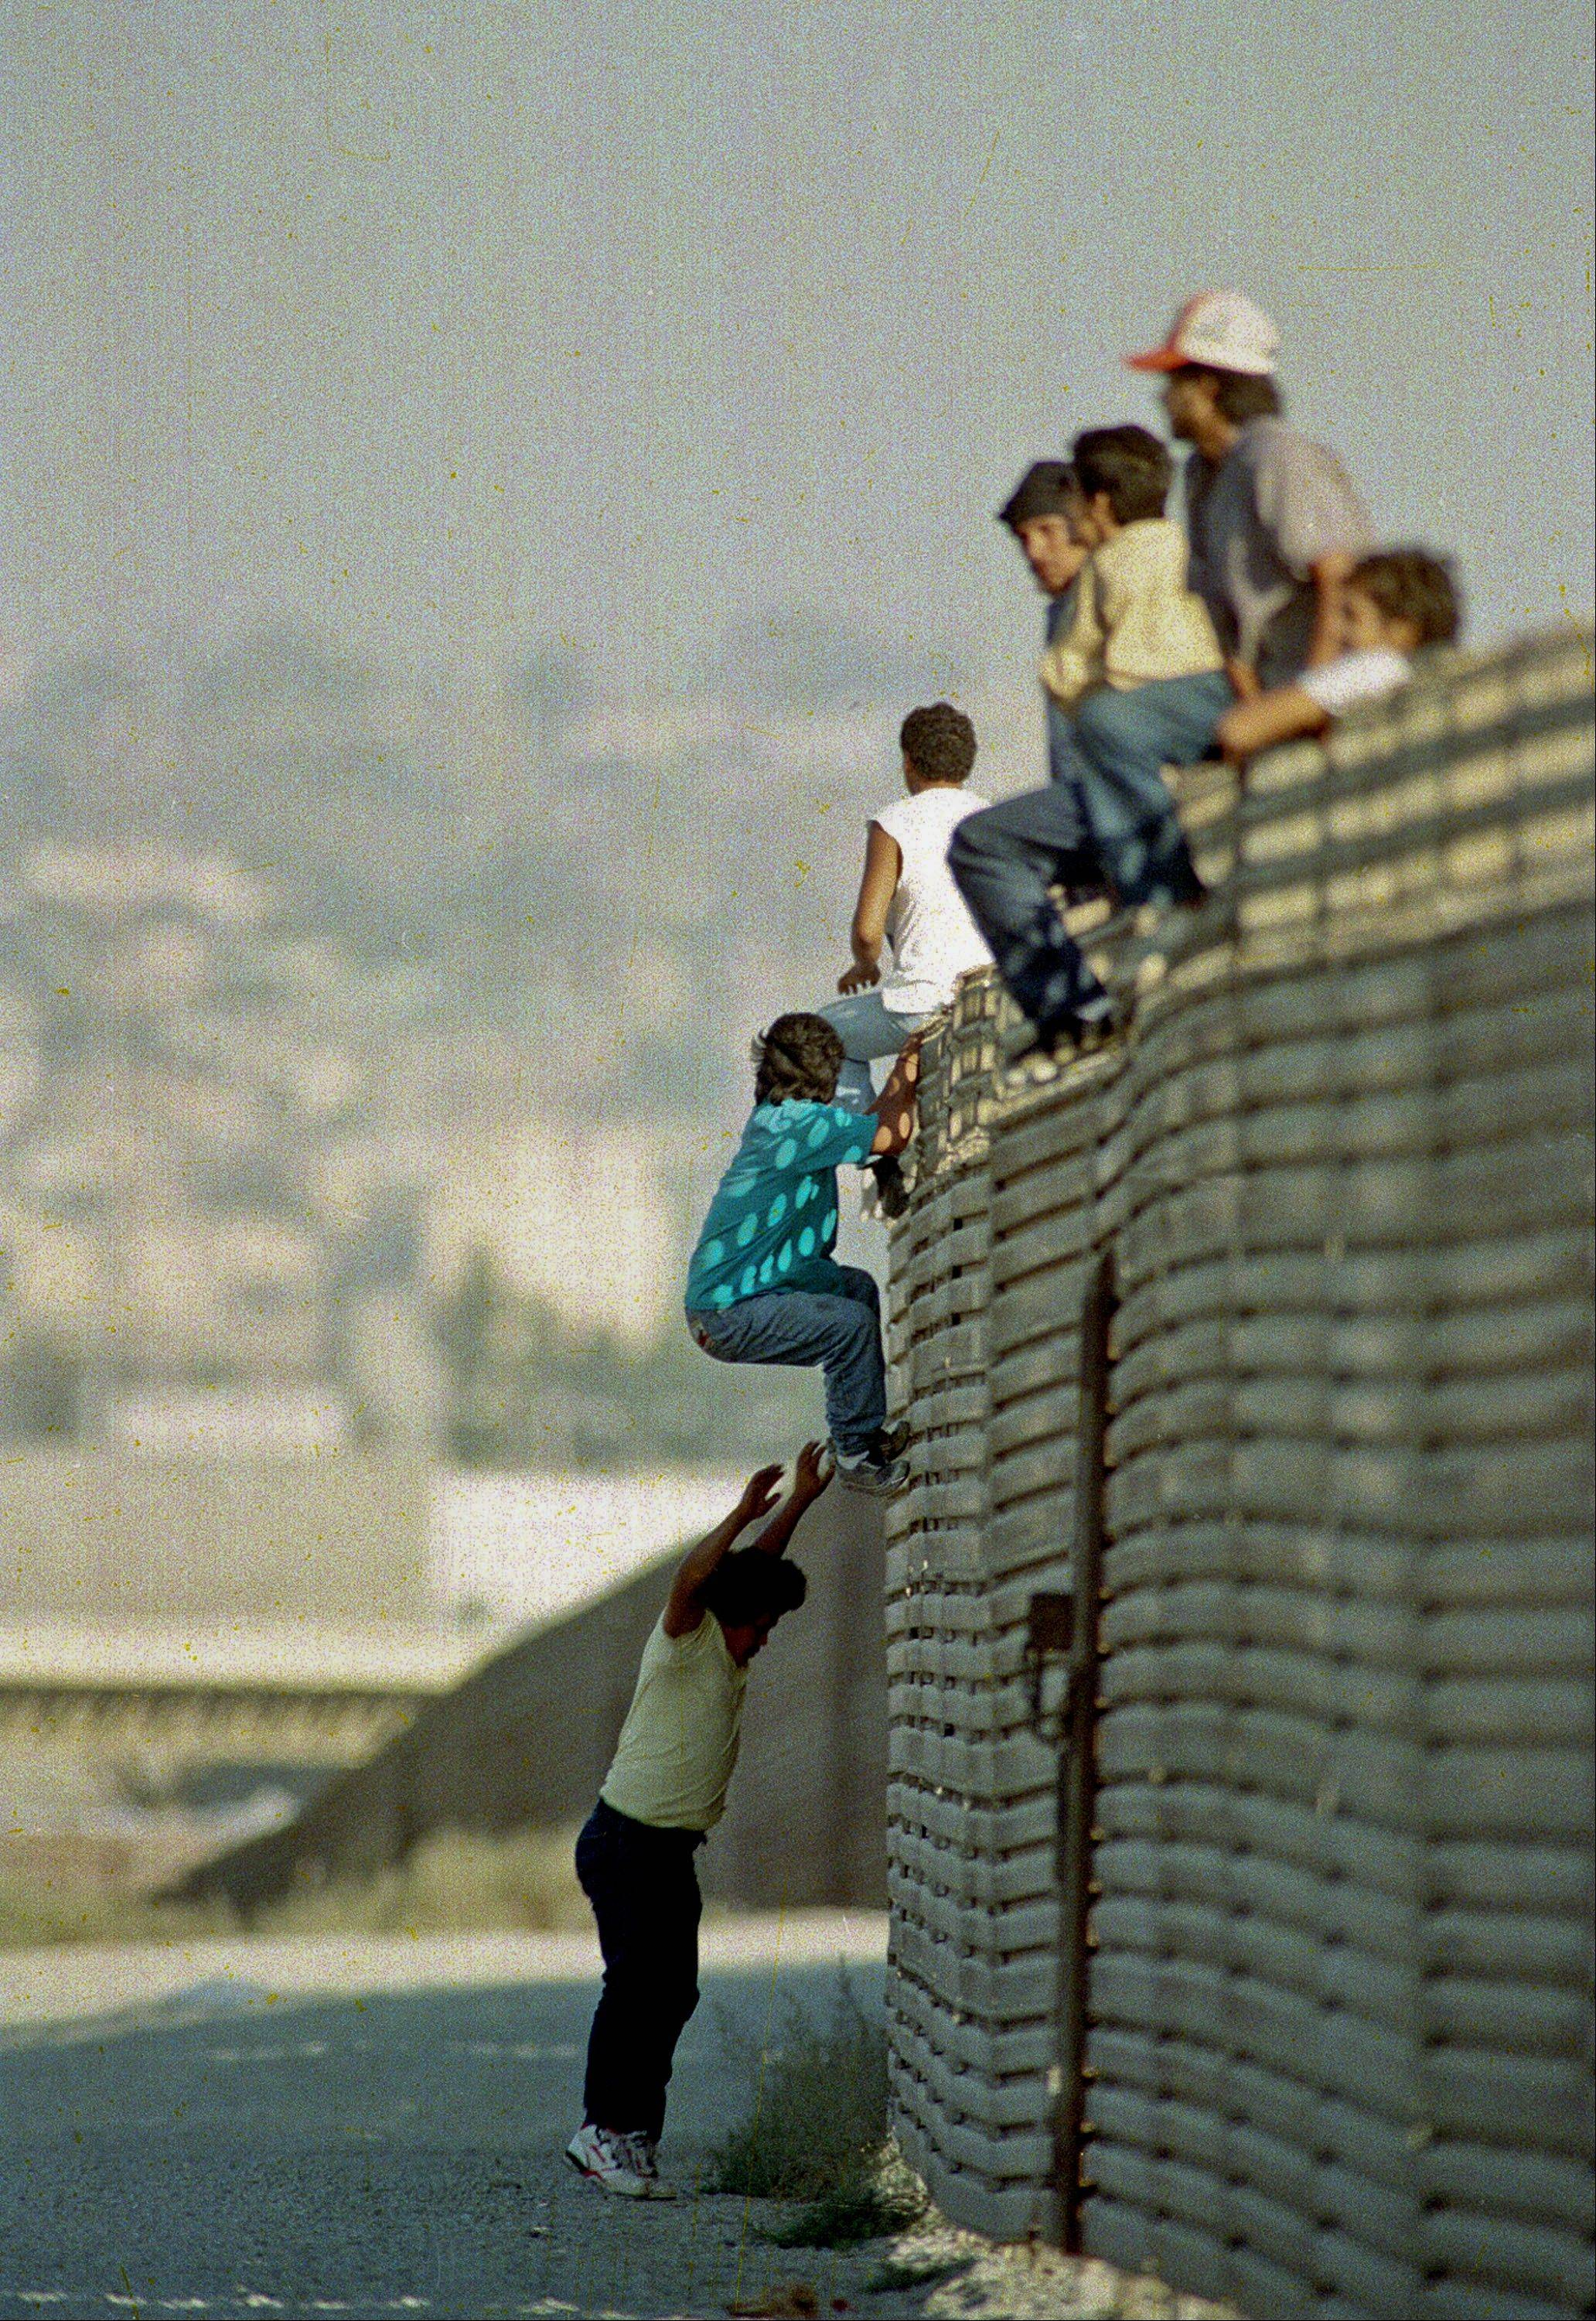 Associated Press/Oct. 14 1991A group of illegal Mexican immigrants jump from a border fence to enter the United States, near Tijuana, Mexico.